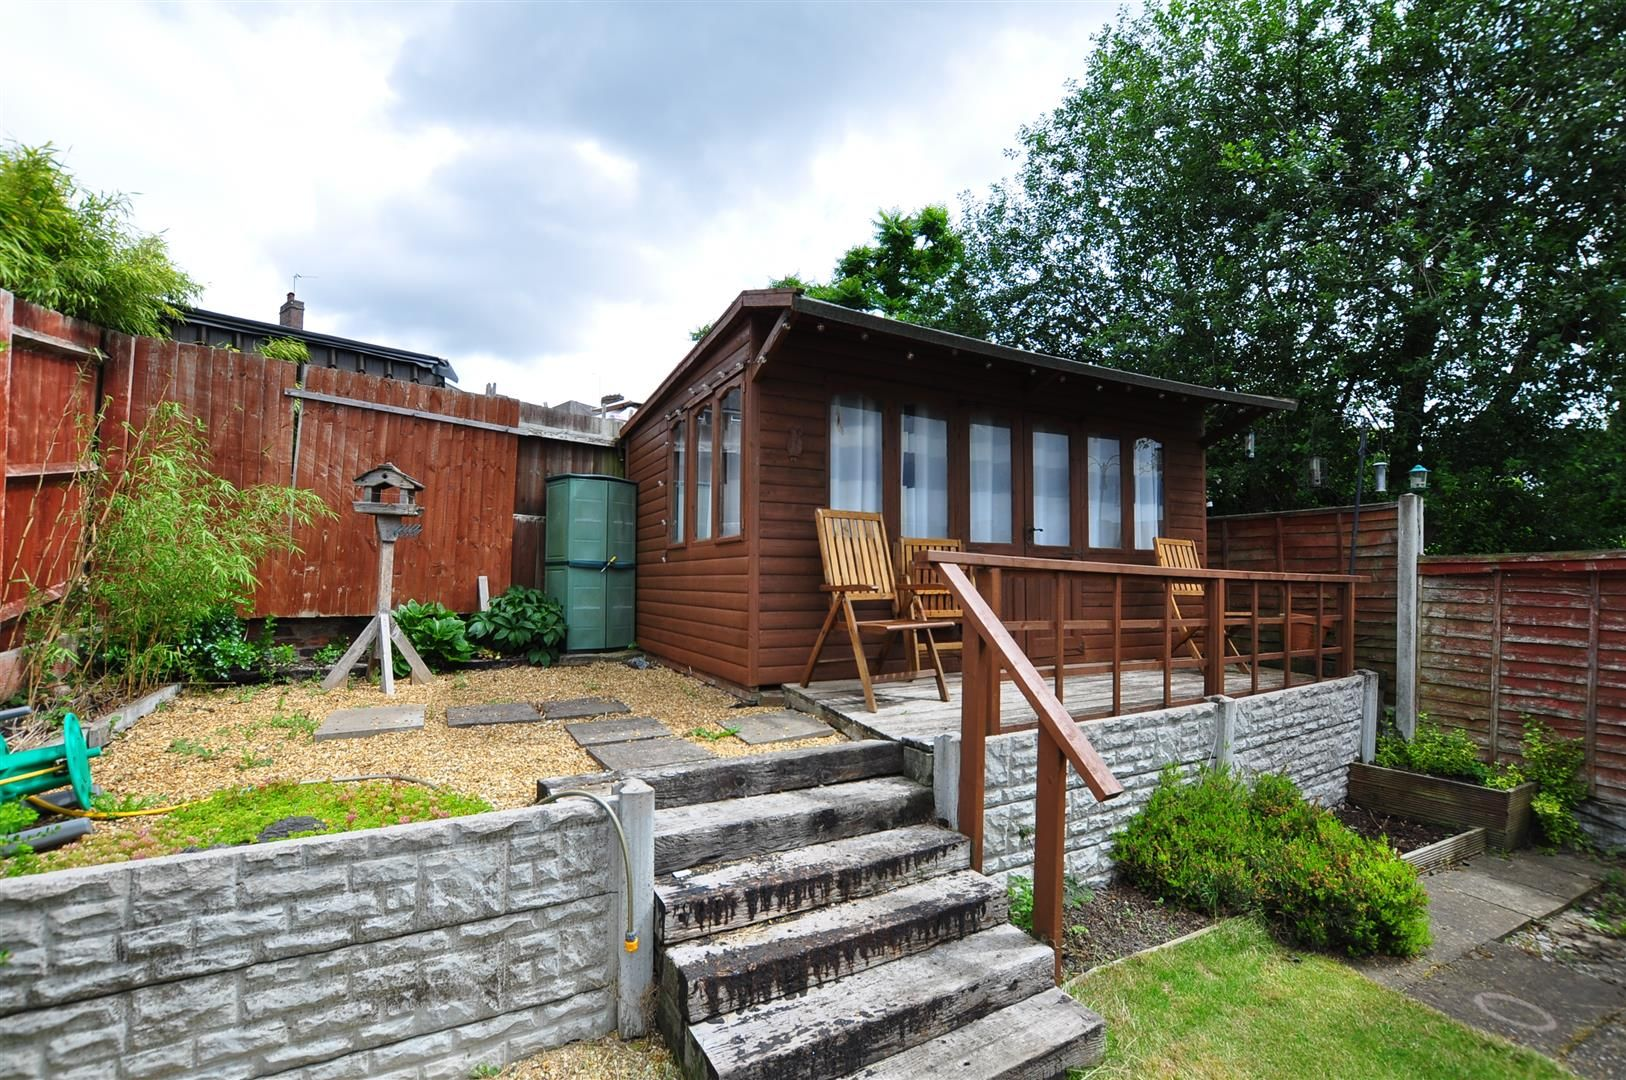 3 bed semi-detached for sale in Lower Gornal 17